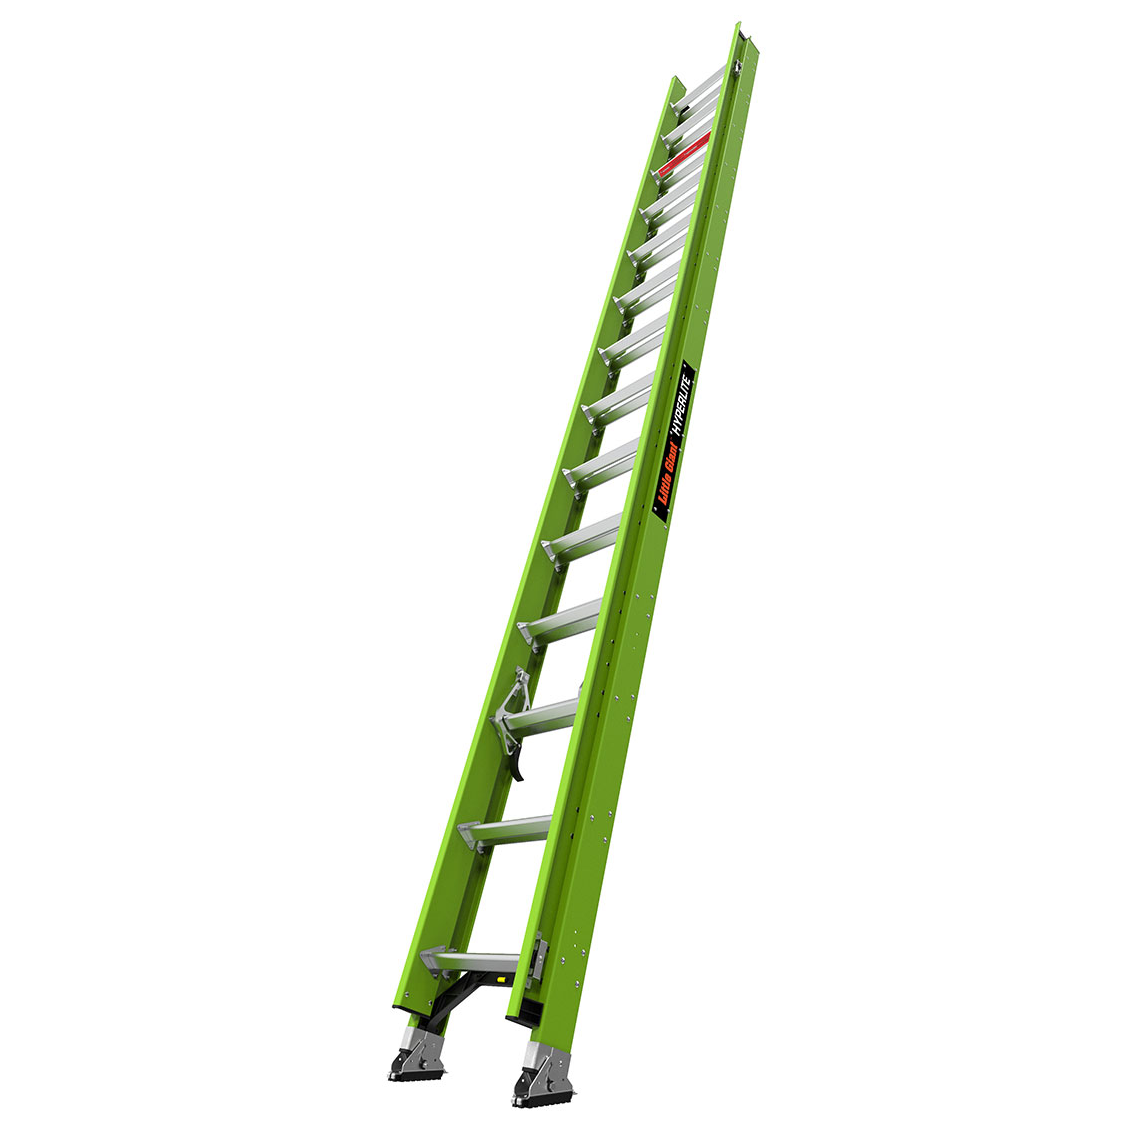 28 Ft. HyperLite Fiberglass Extension Ladder - Type IA